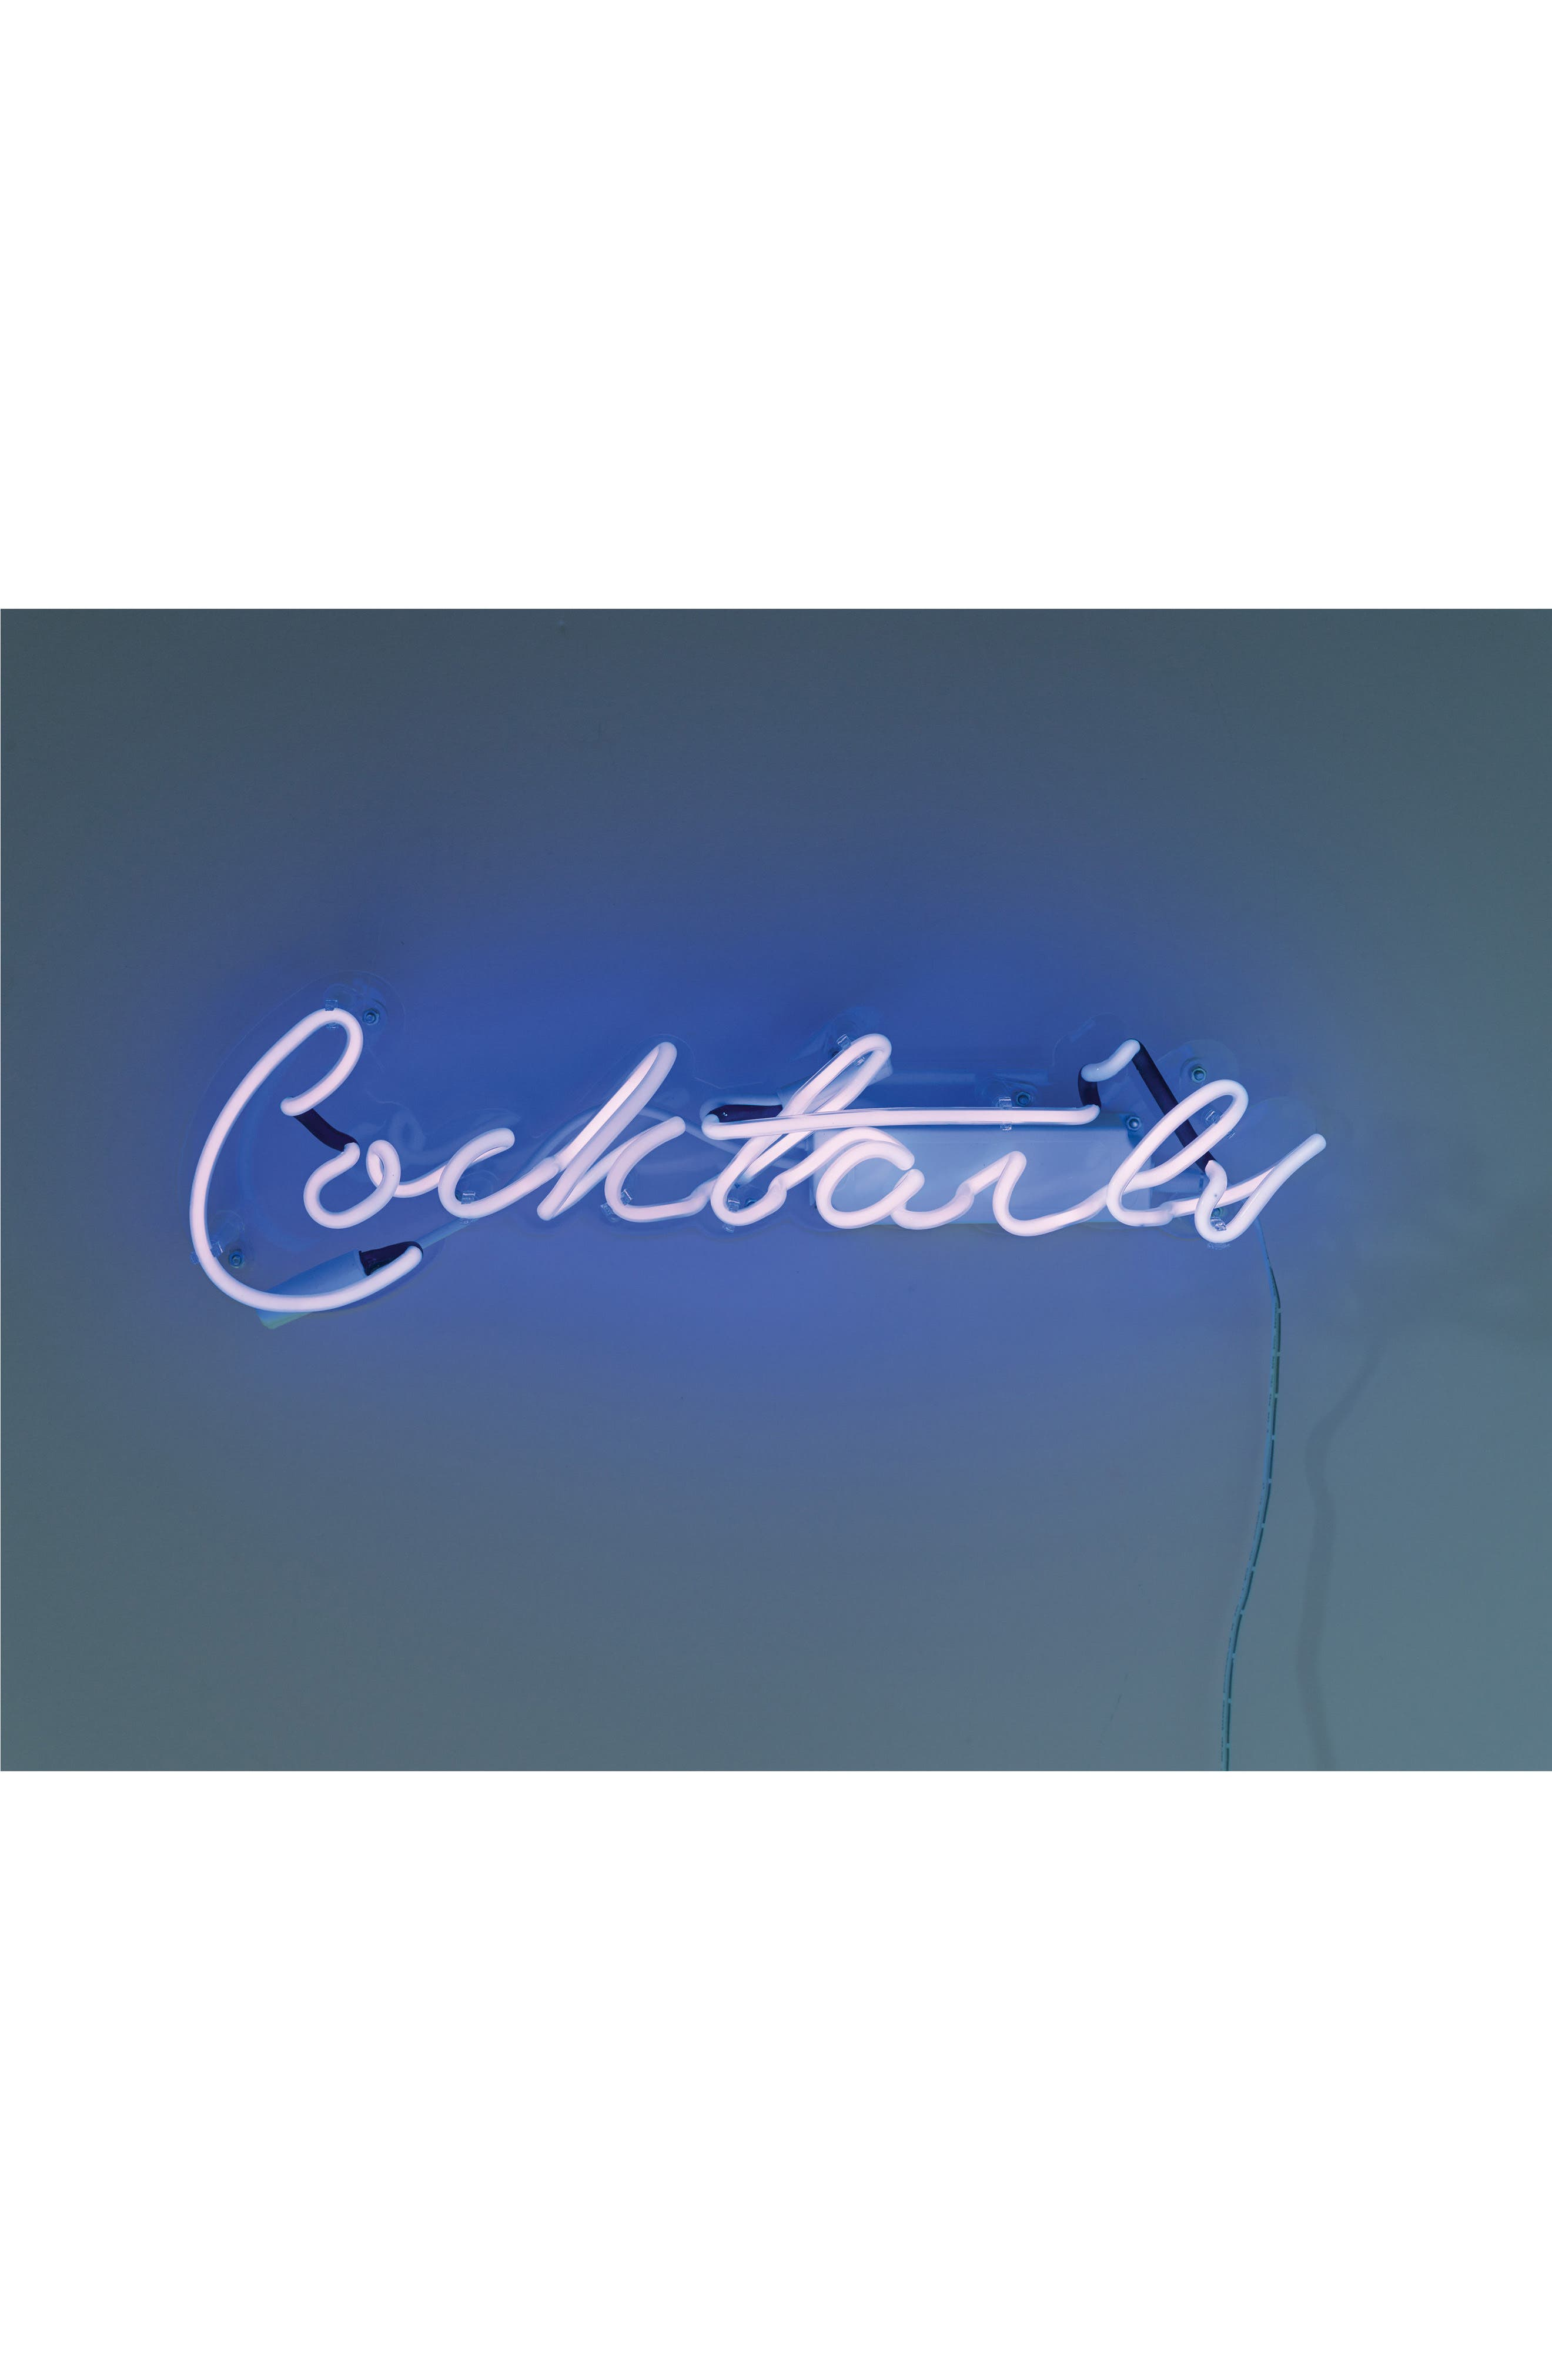 Cocktails Neon Light Wall Art,                         Main,                         color,